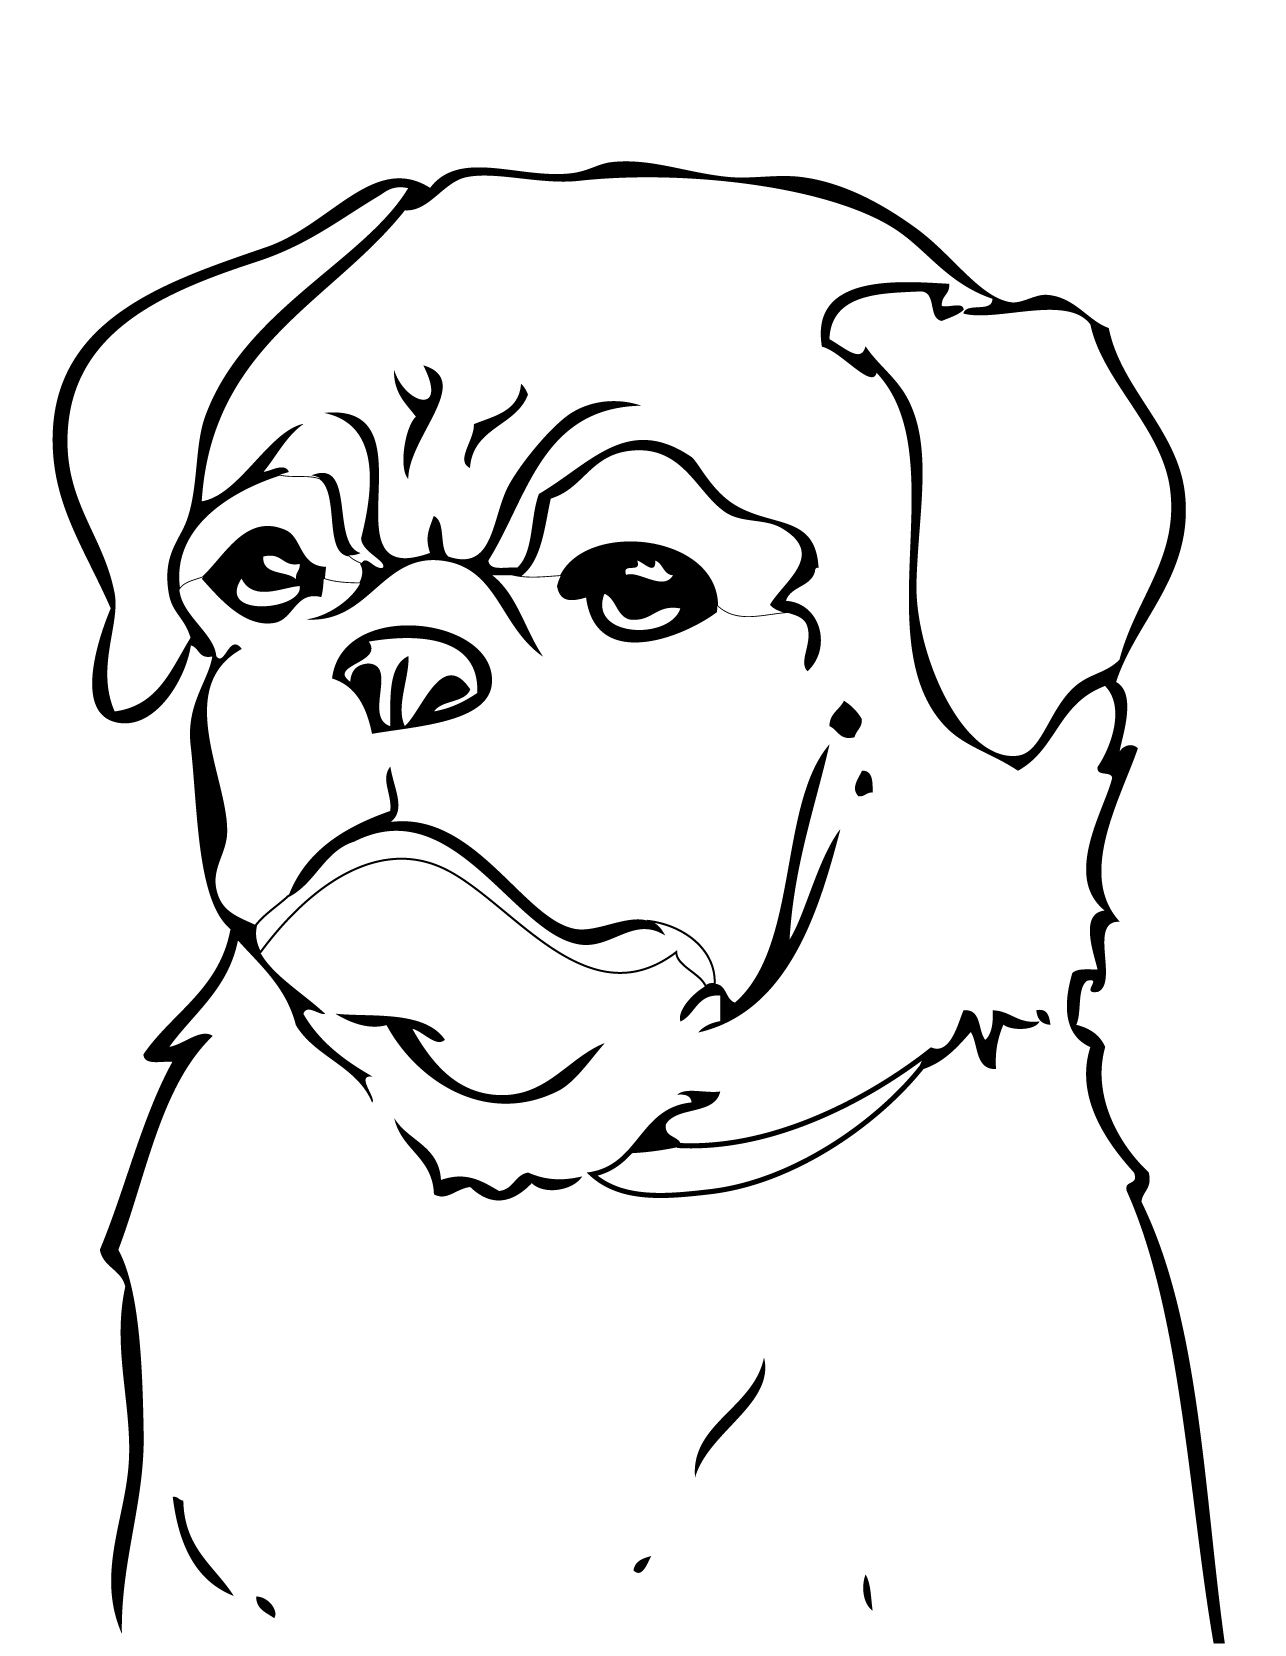 coloring pages to print dogs animals coloring pages cute puppy playing kids to print dogs coloring pages